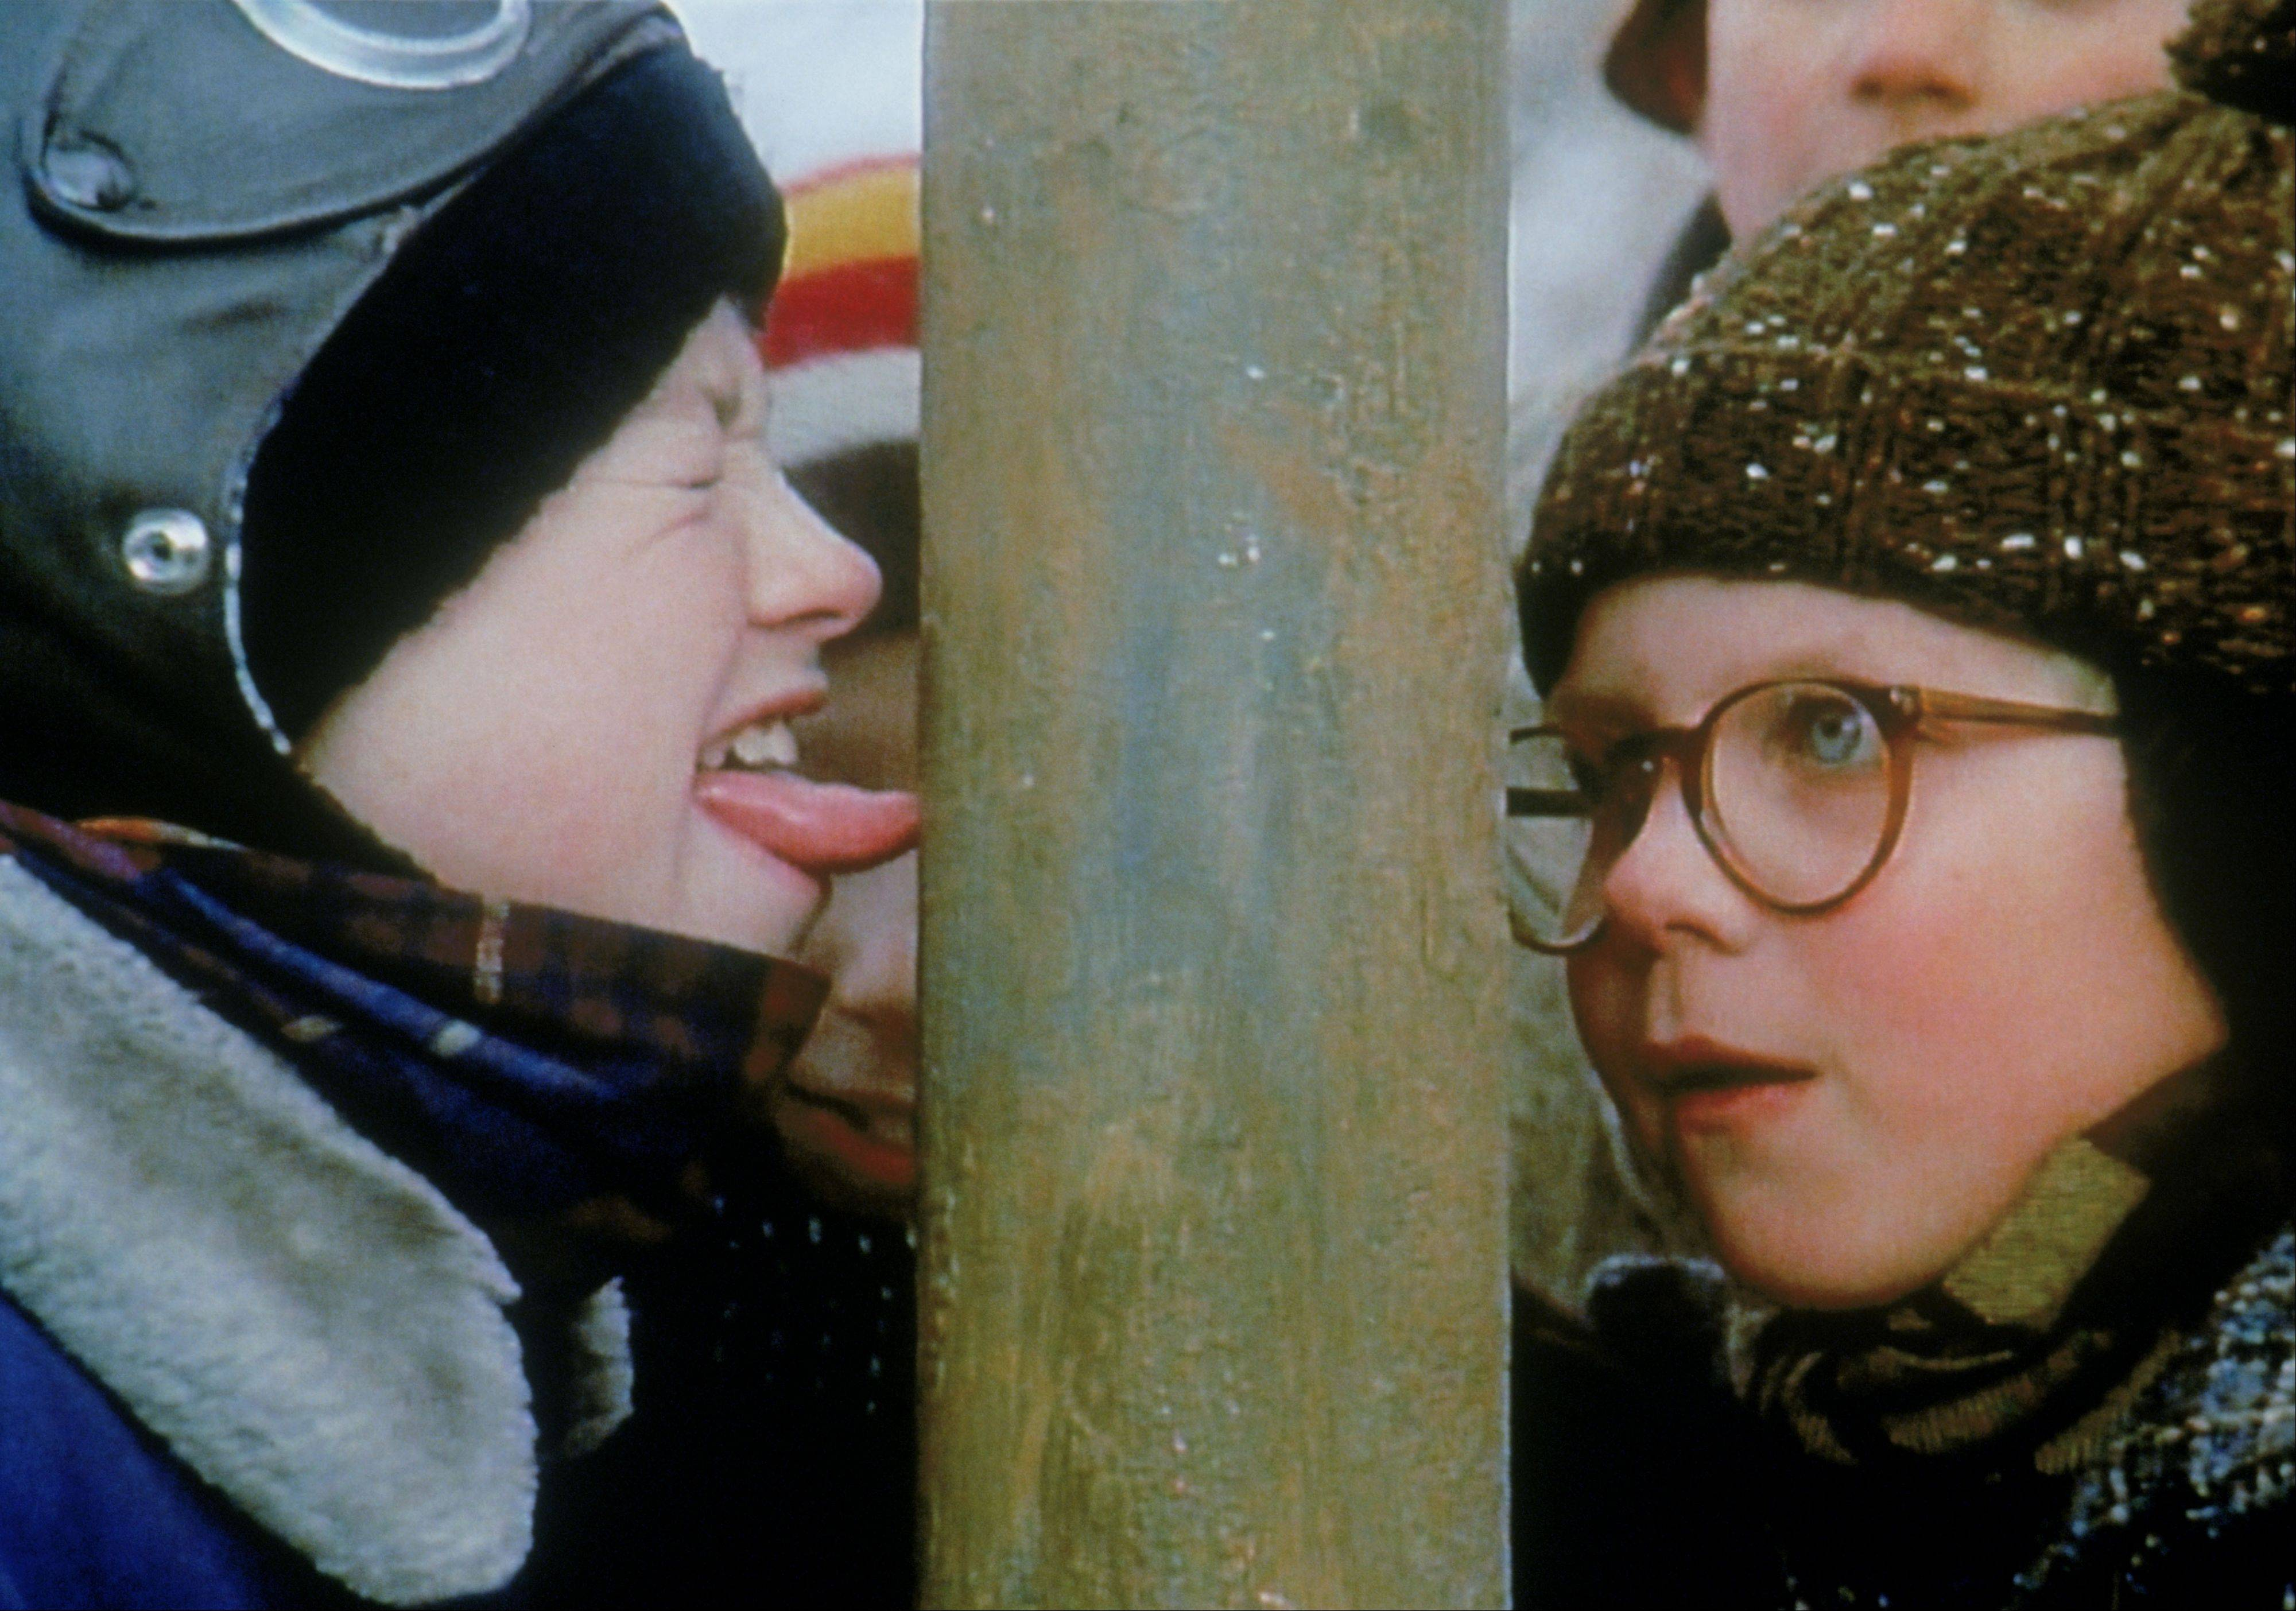 Poll Vault: What's your favorite Christmas movie?